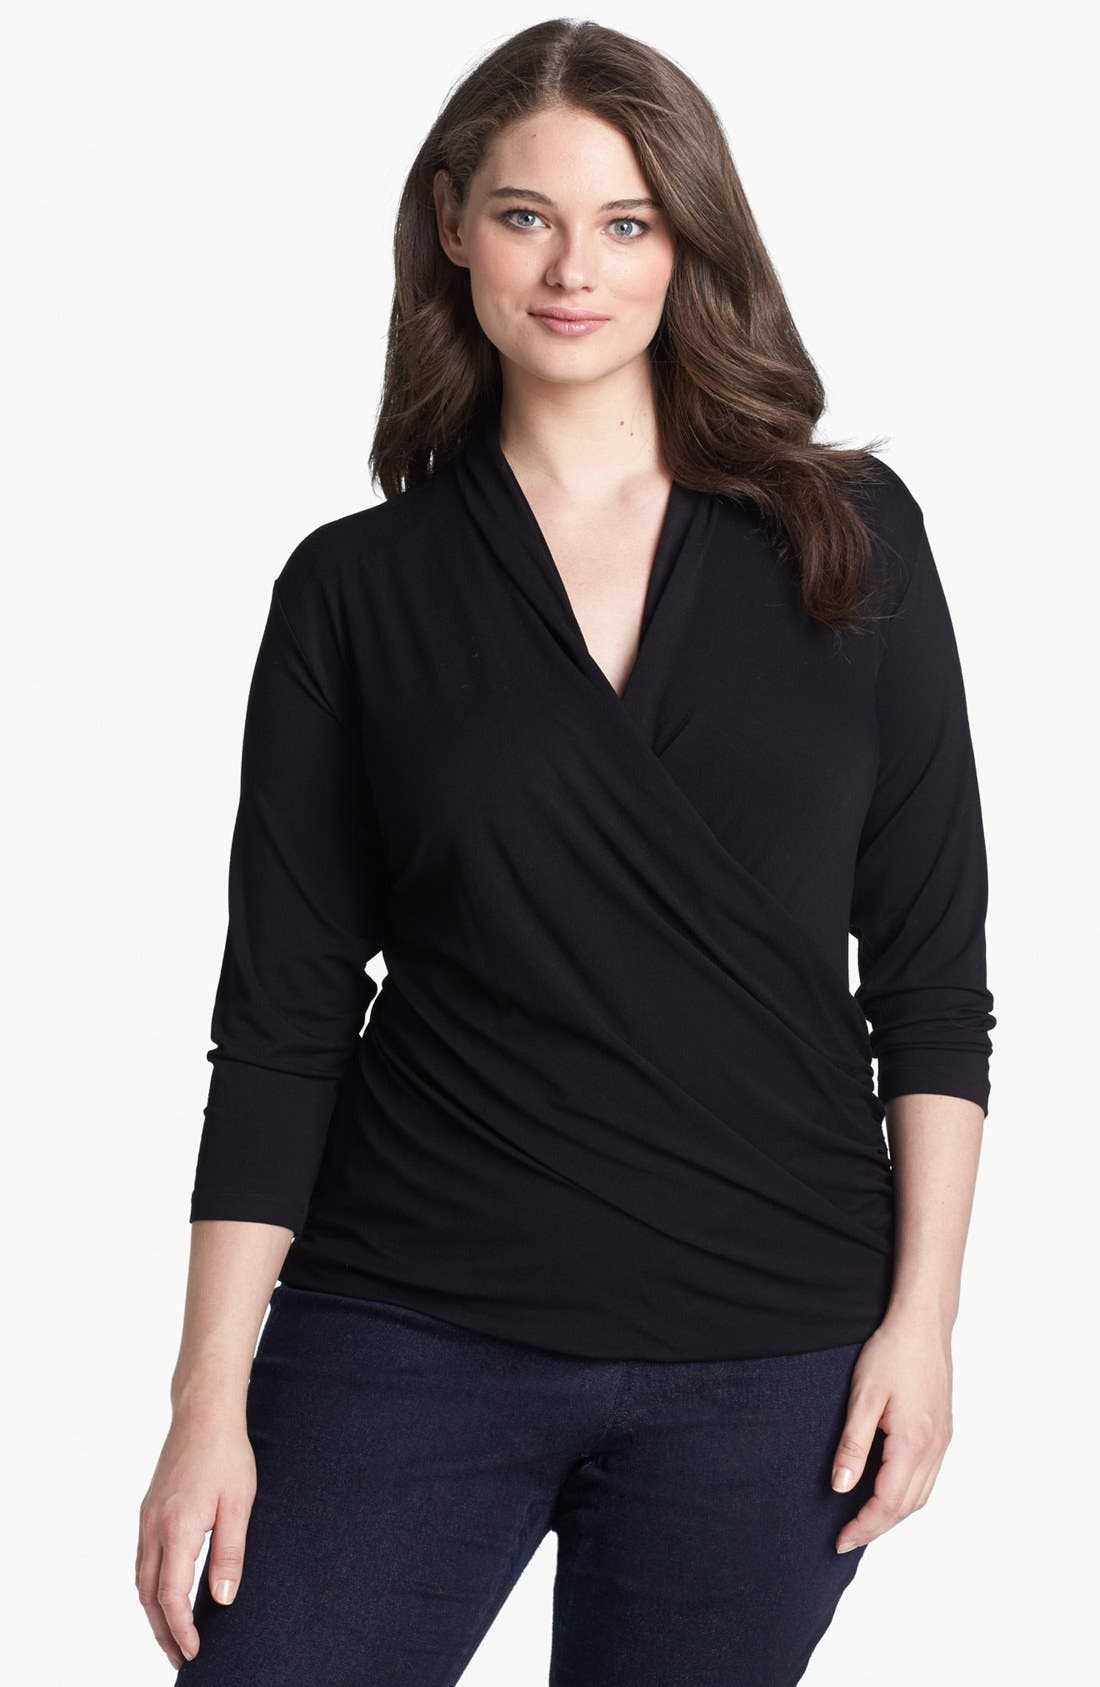 Alternate Image 1 Selected - Vince Camuto Jersey Wrap Top (Plus Size)